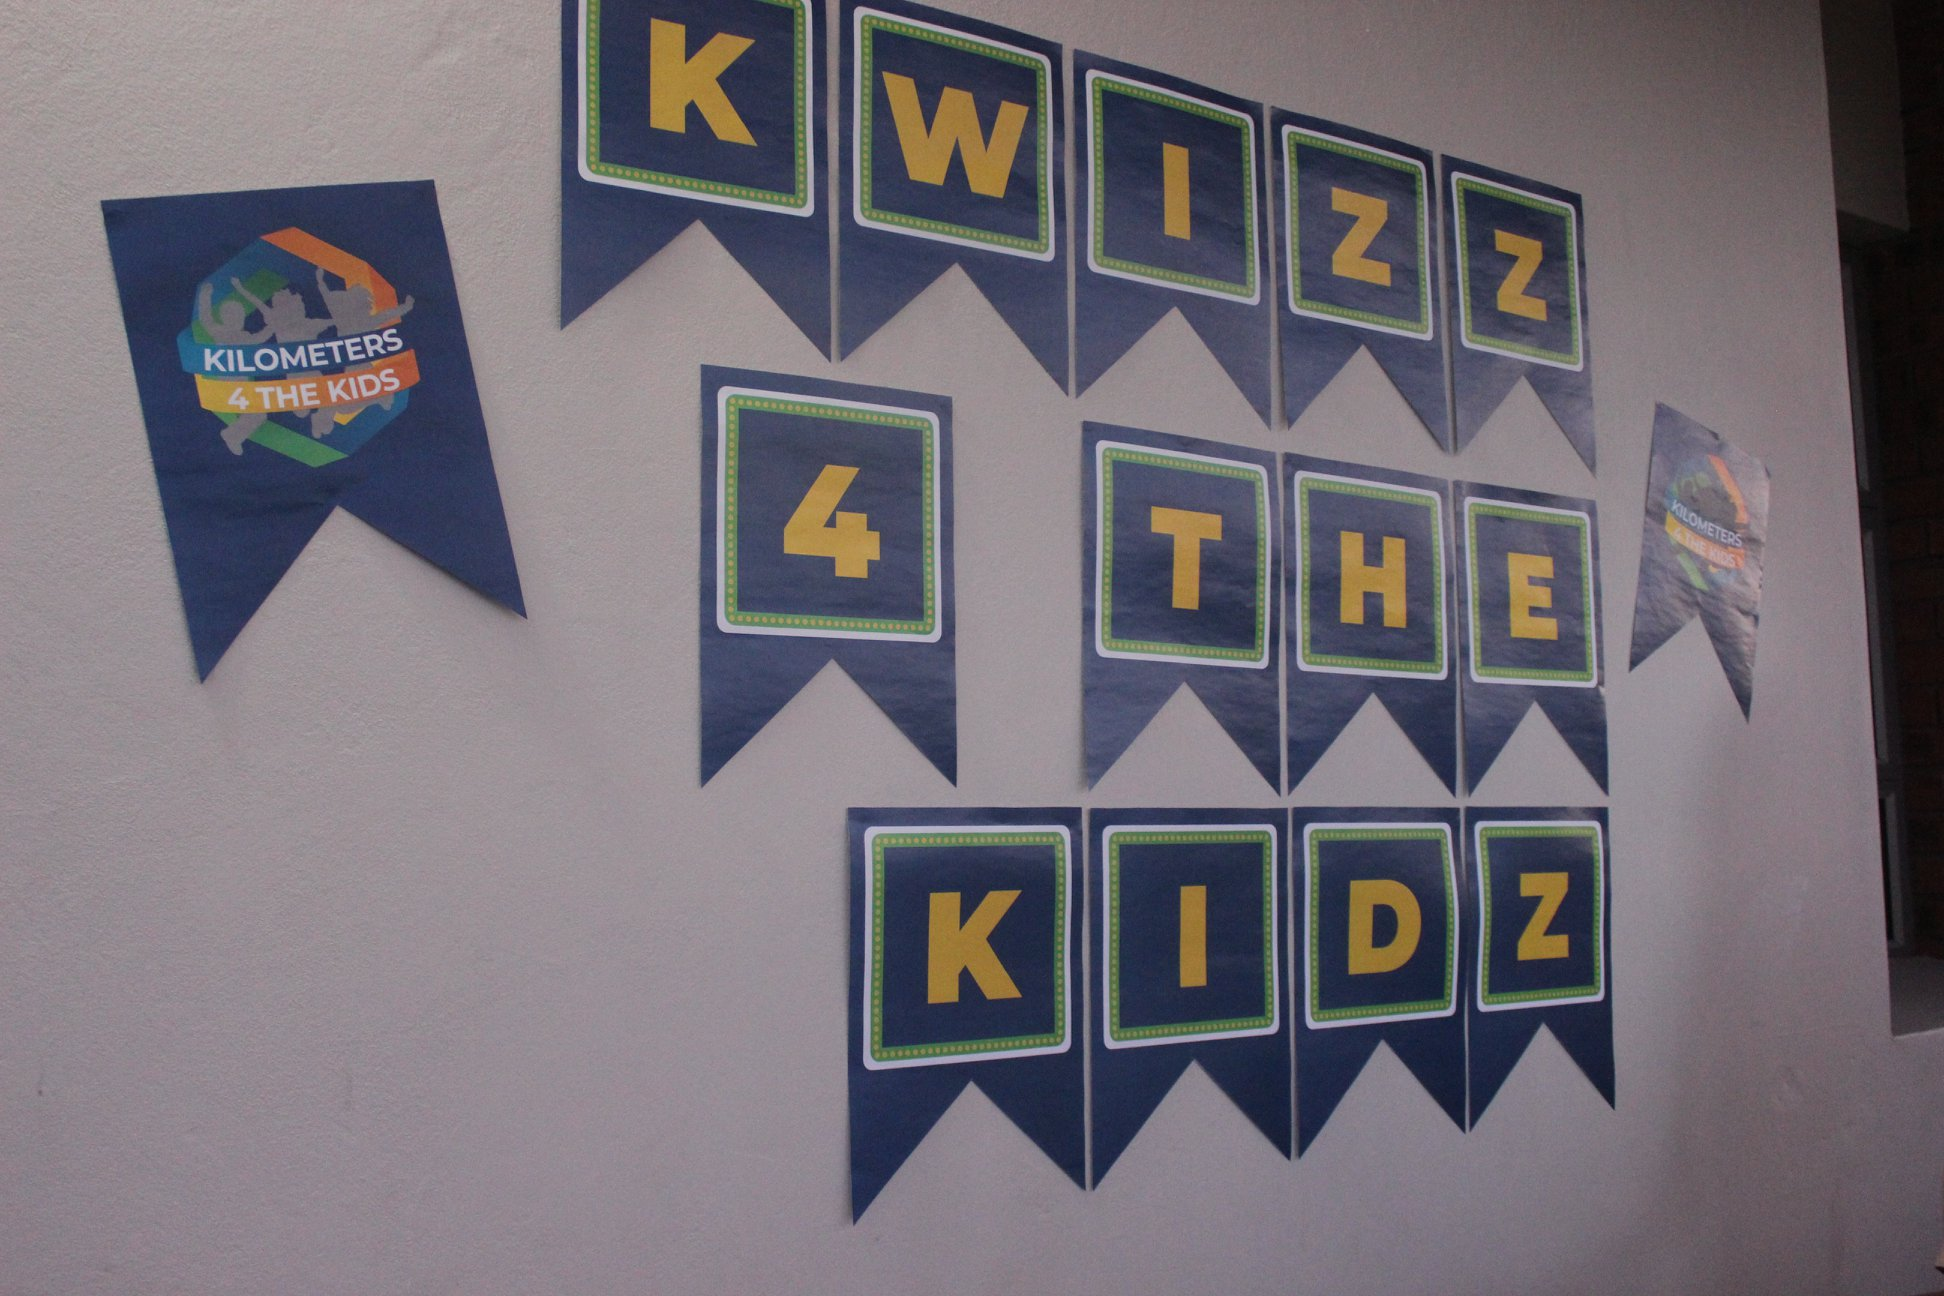 Prize Donation - Kwizz 4 the Kids